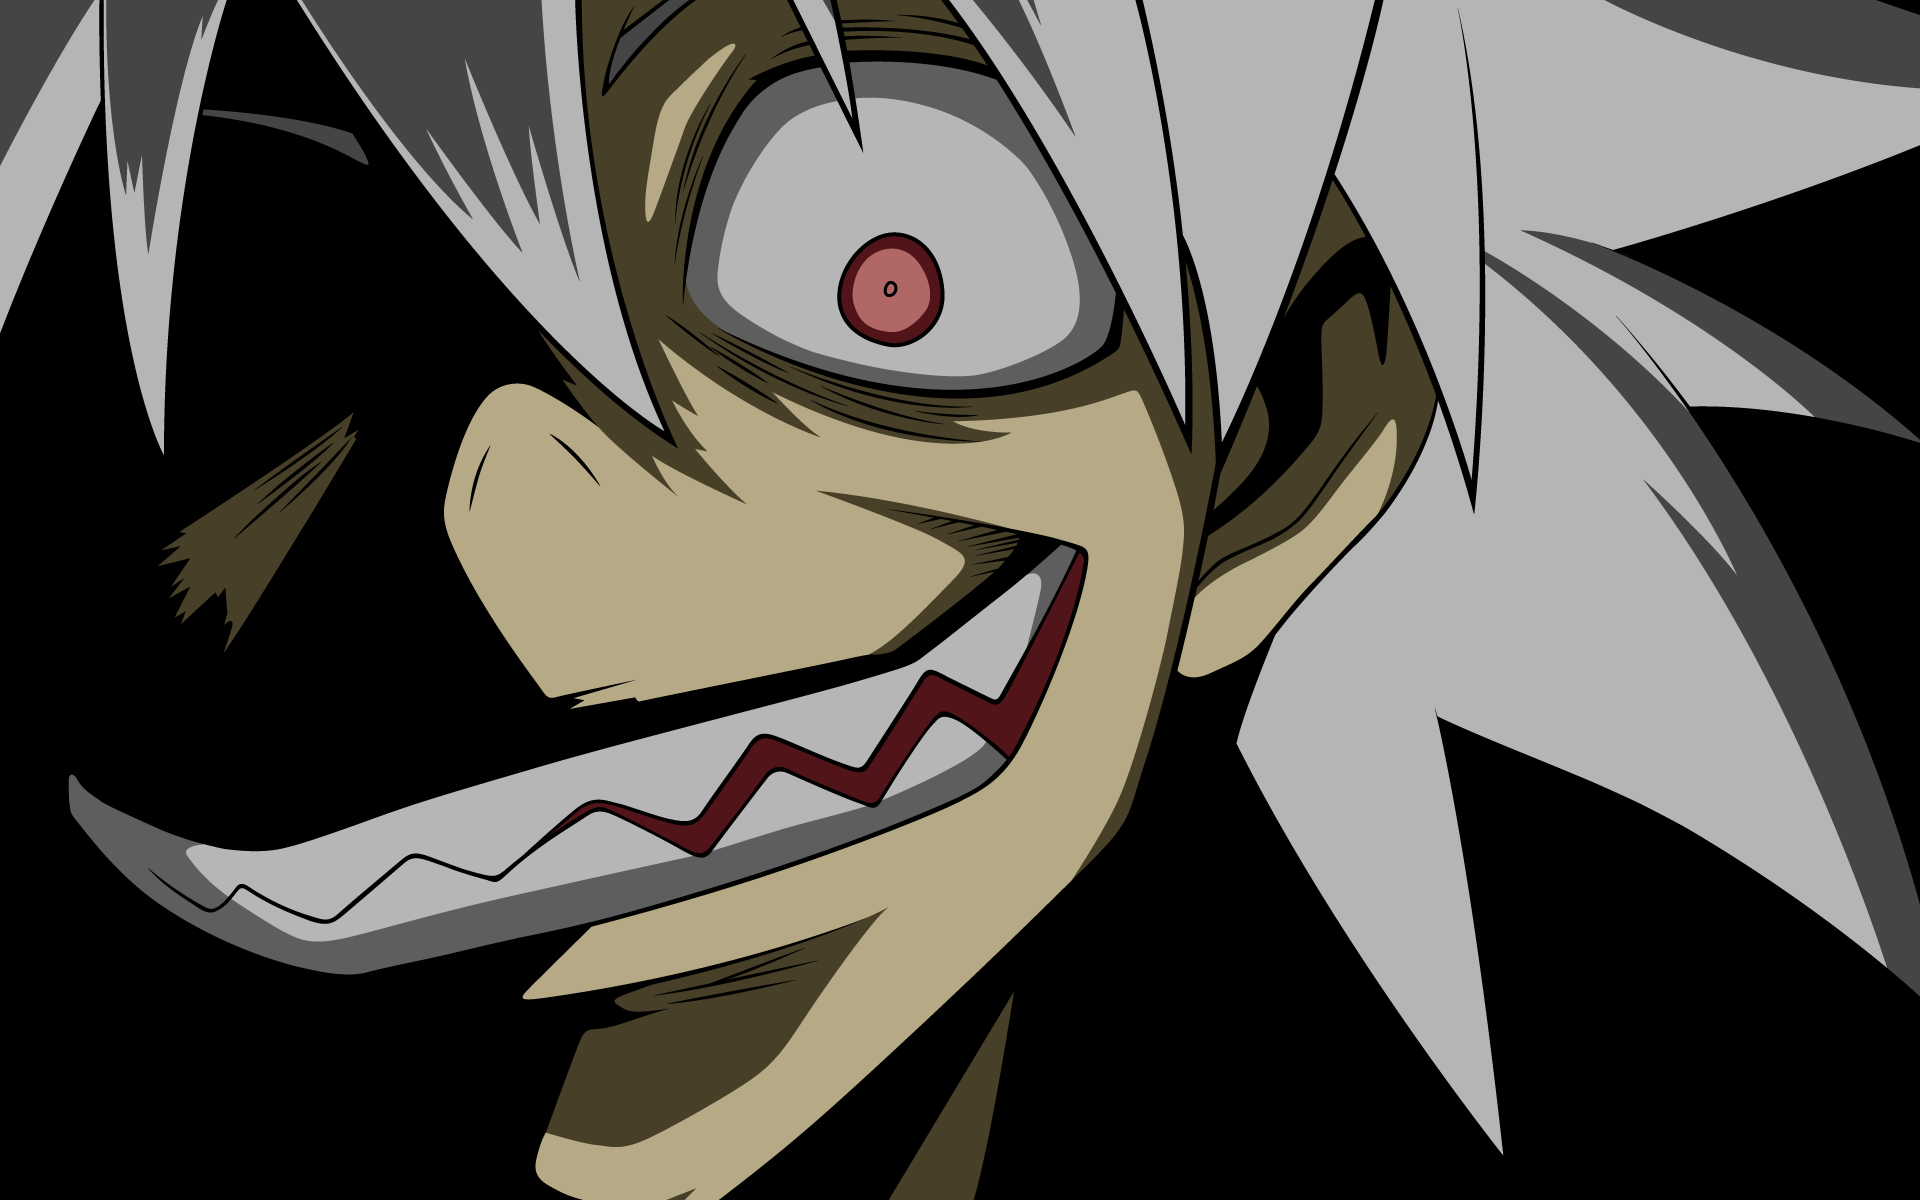 Soul Eater Anime Amazing Hd Wallpapers All Hd Wallpapers